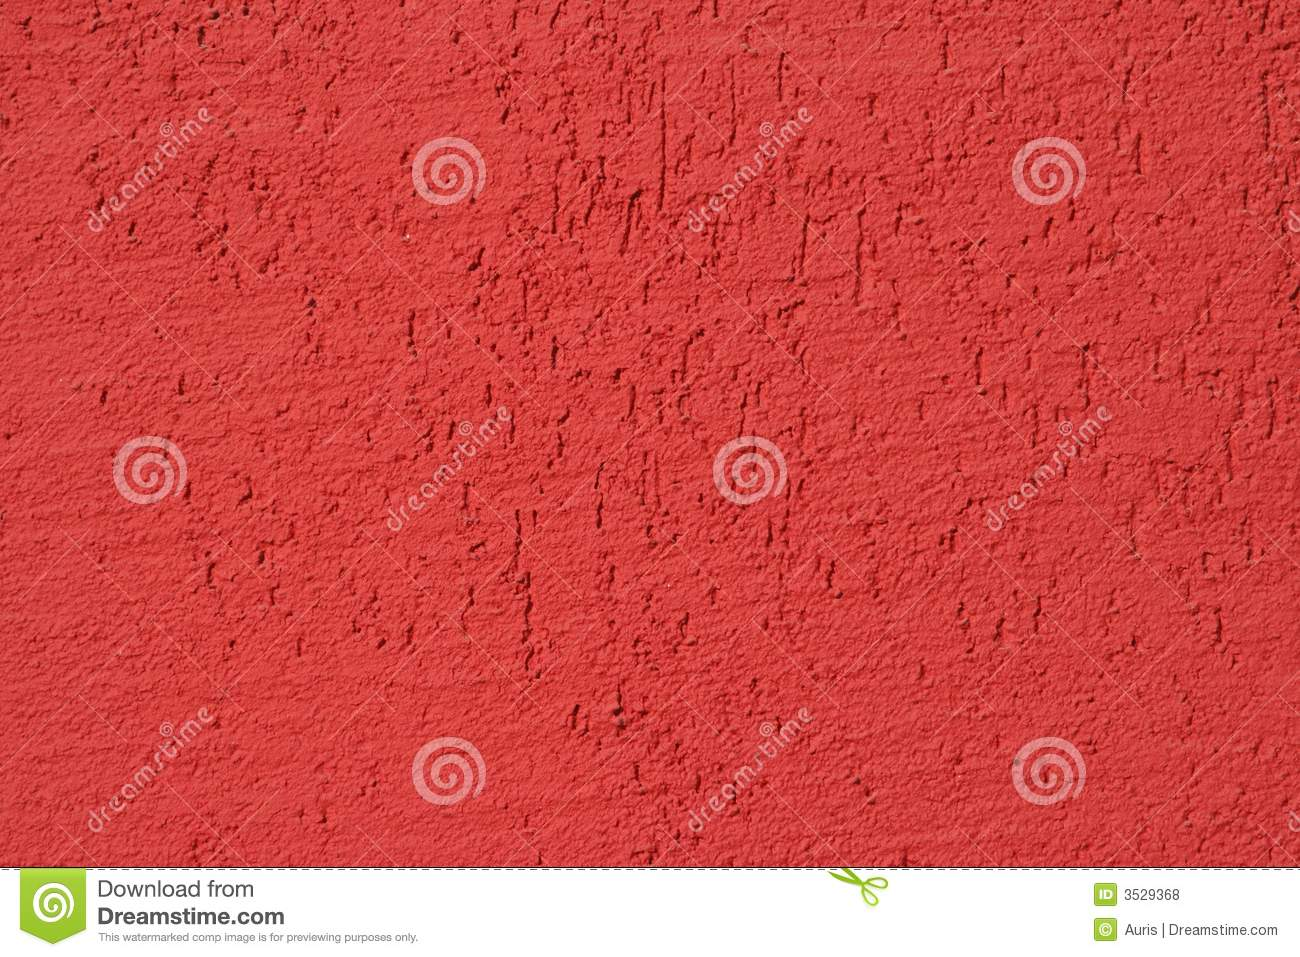 Red Texture Wall : Red Painted Wall Texture Royalty Free Stock Photos - Image: 3529368